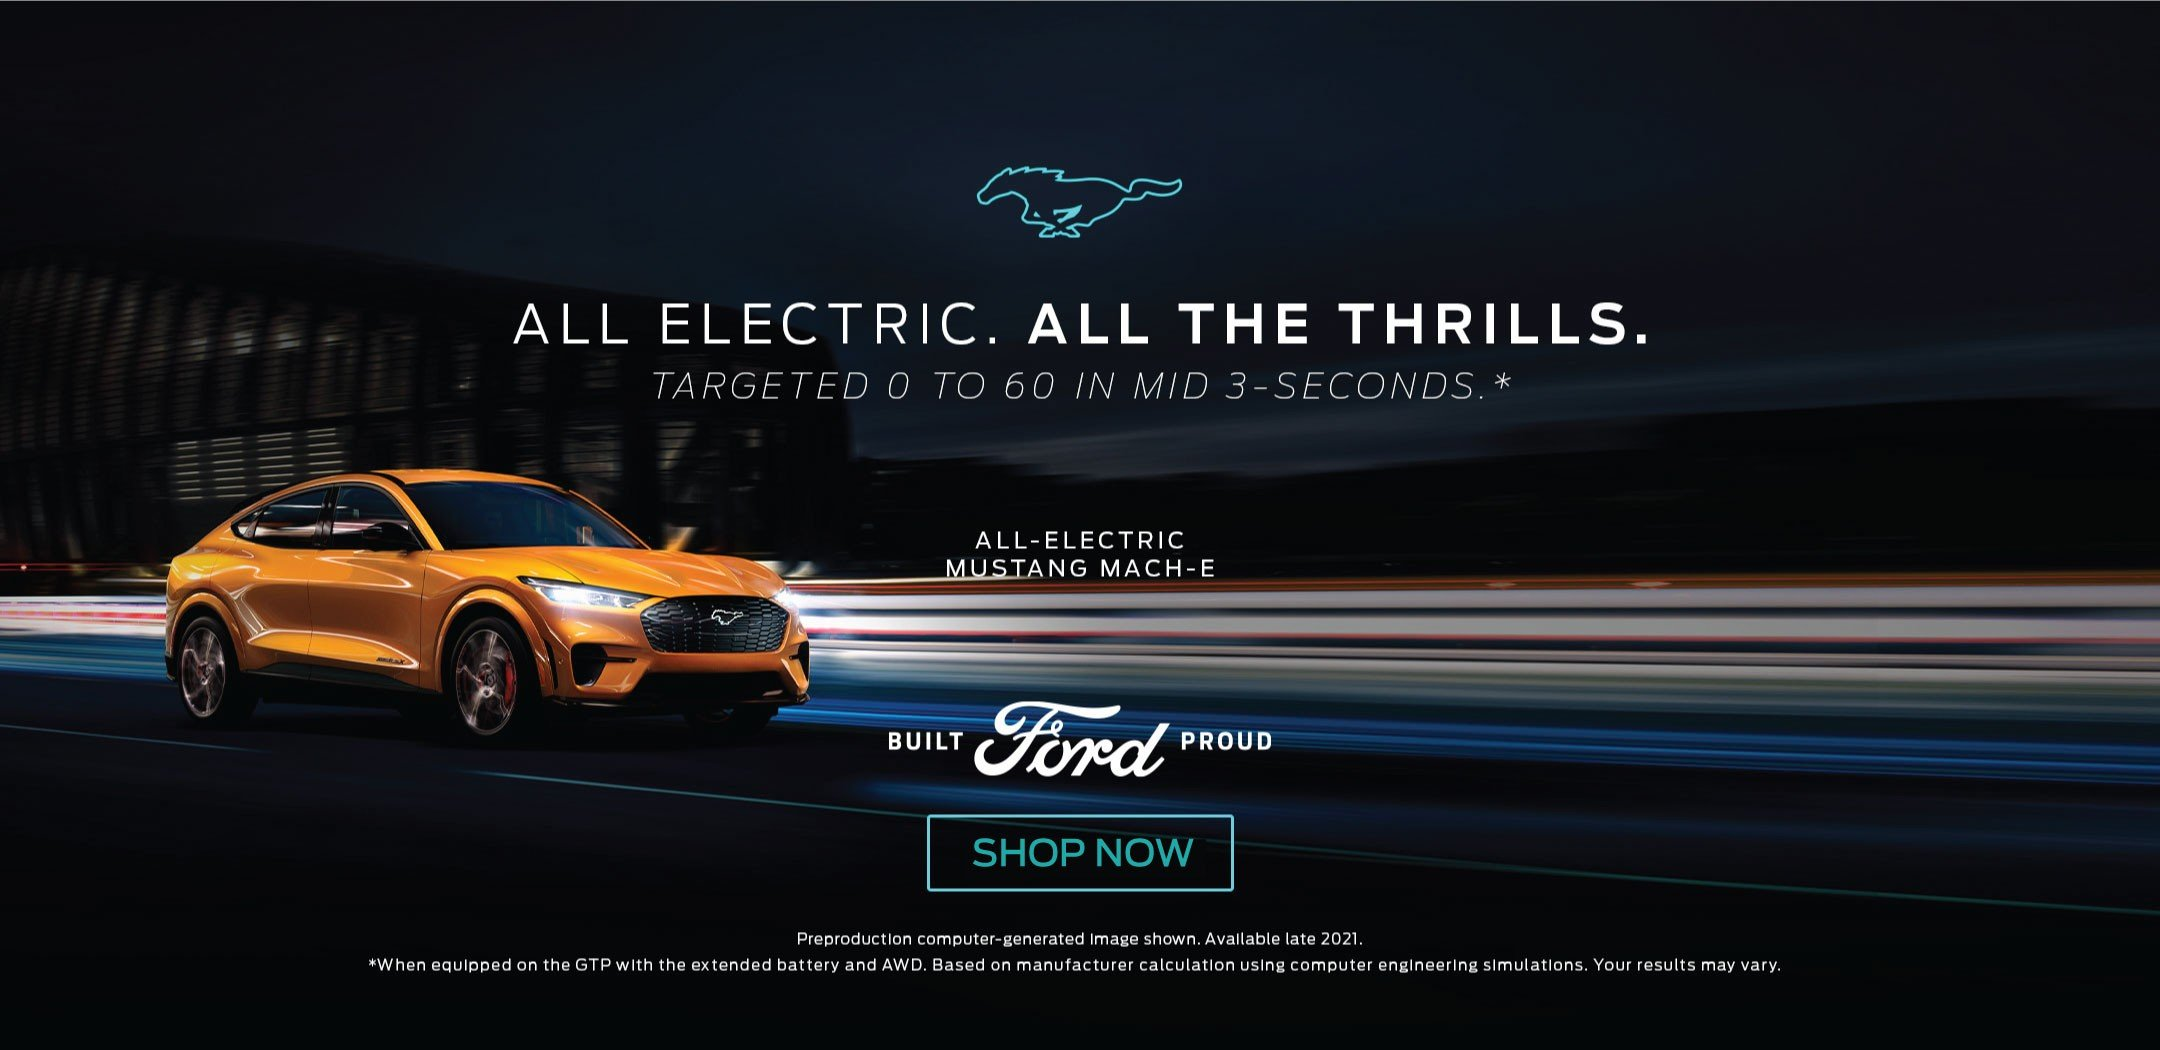 Electric Mustang Mach E Dealer Bozard Ford of St Augustine